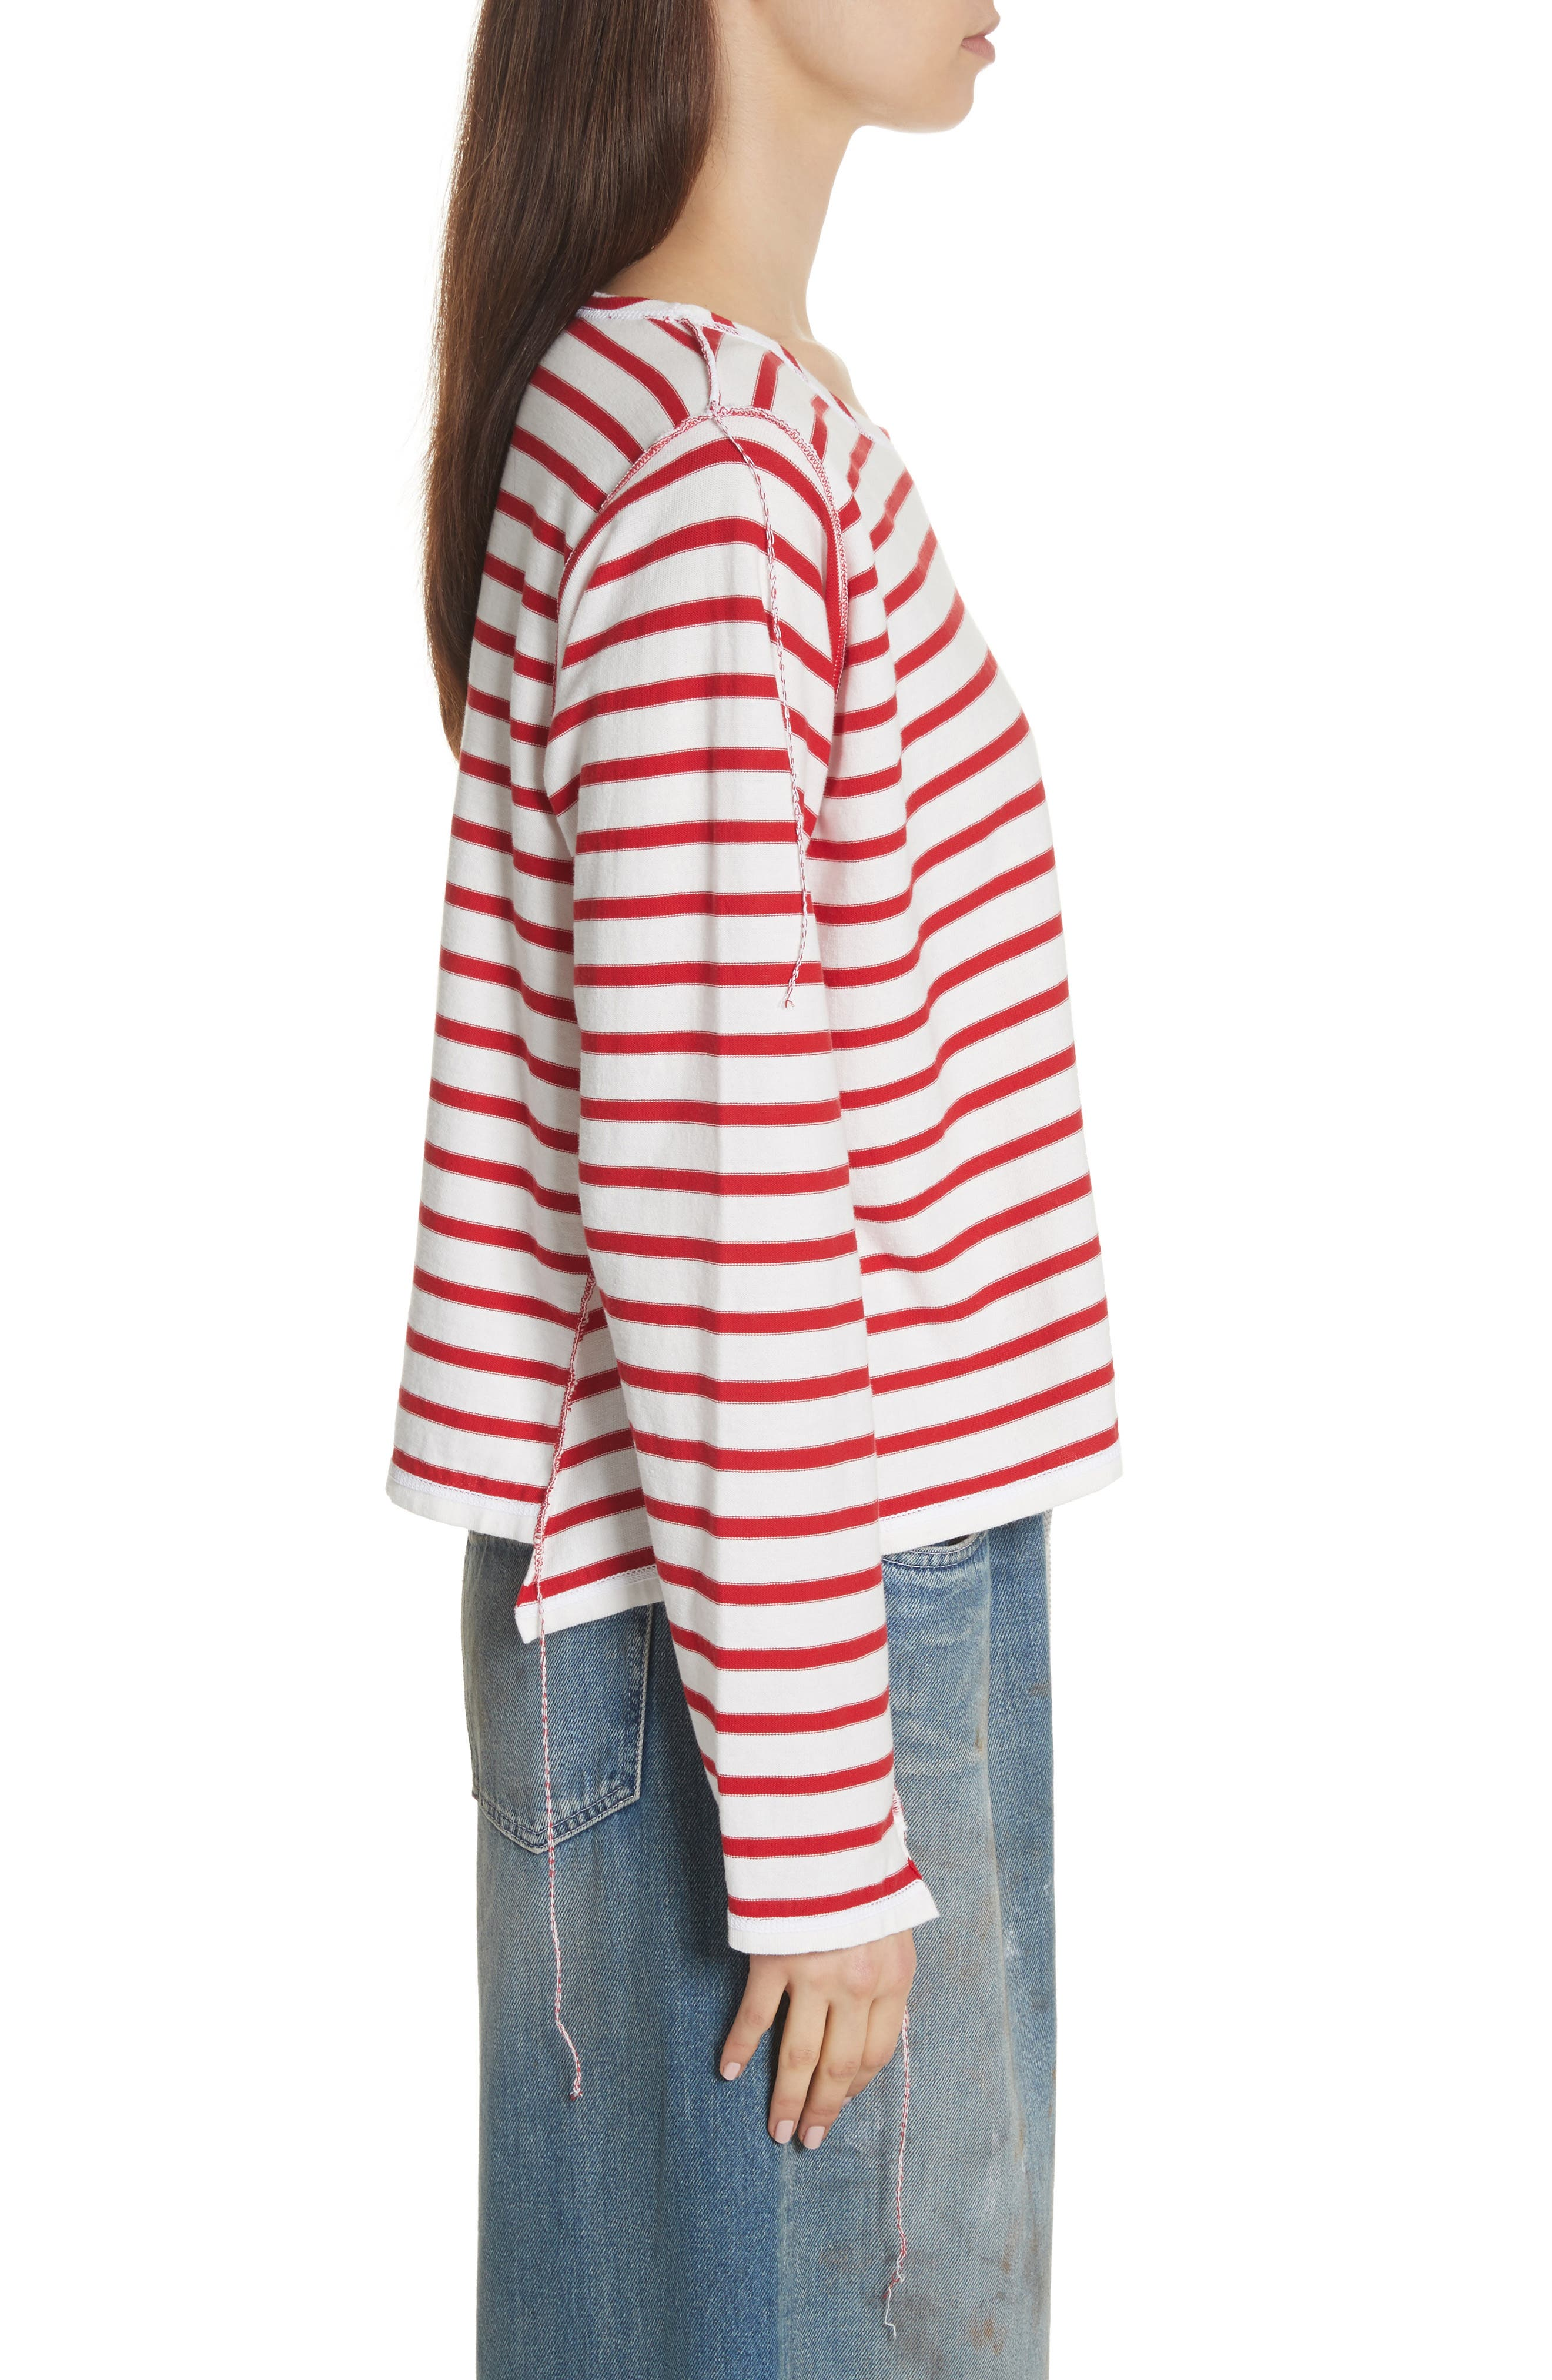 Inside Out Stripe Sweater,                             Alternate thumbnail 3, color,                             600